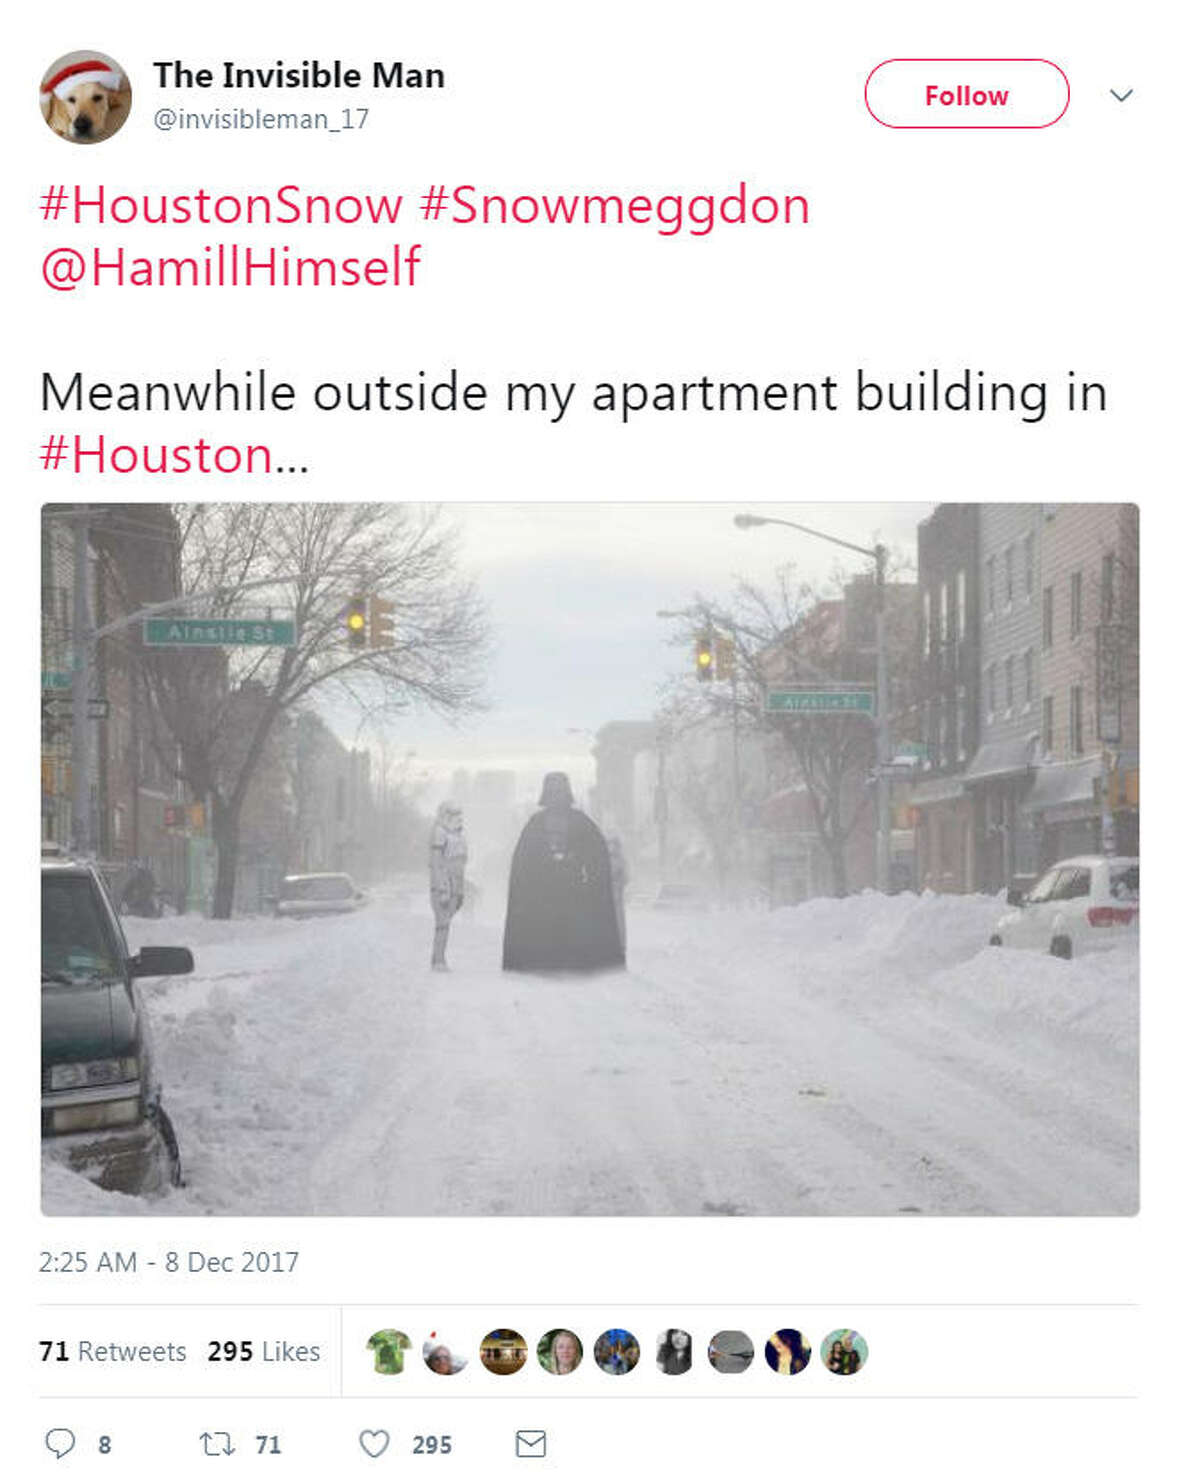 Snow has fallen in Houston and people are reacting with photos and hilarious memes on Twitter.